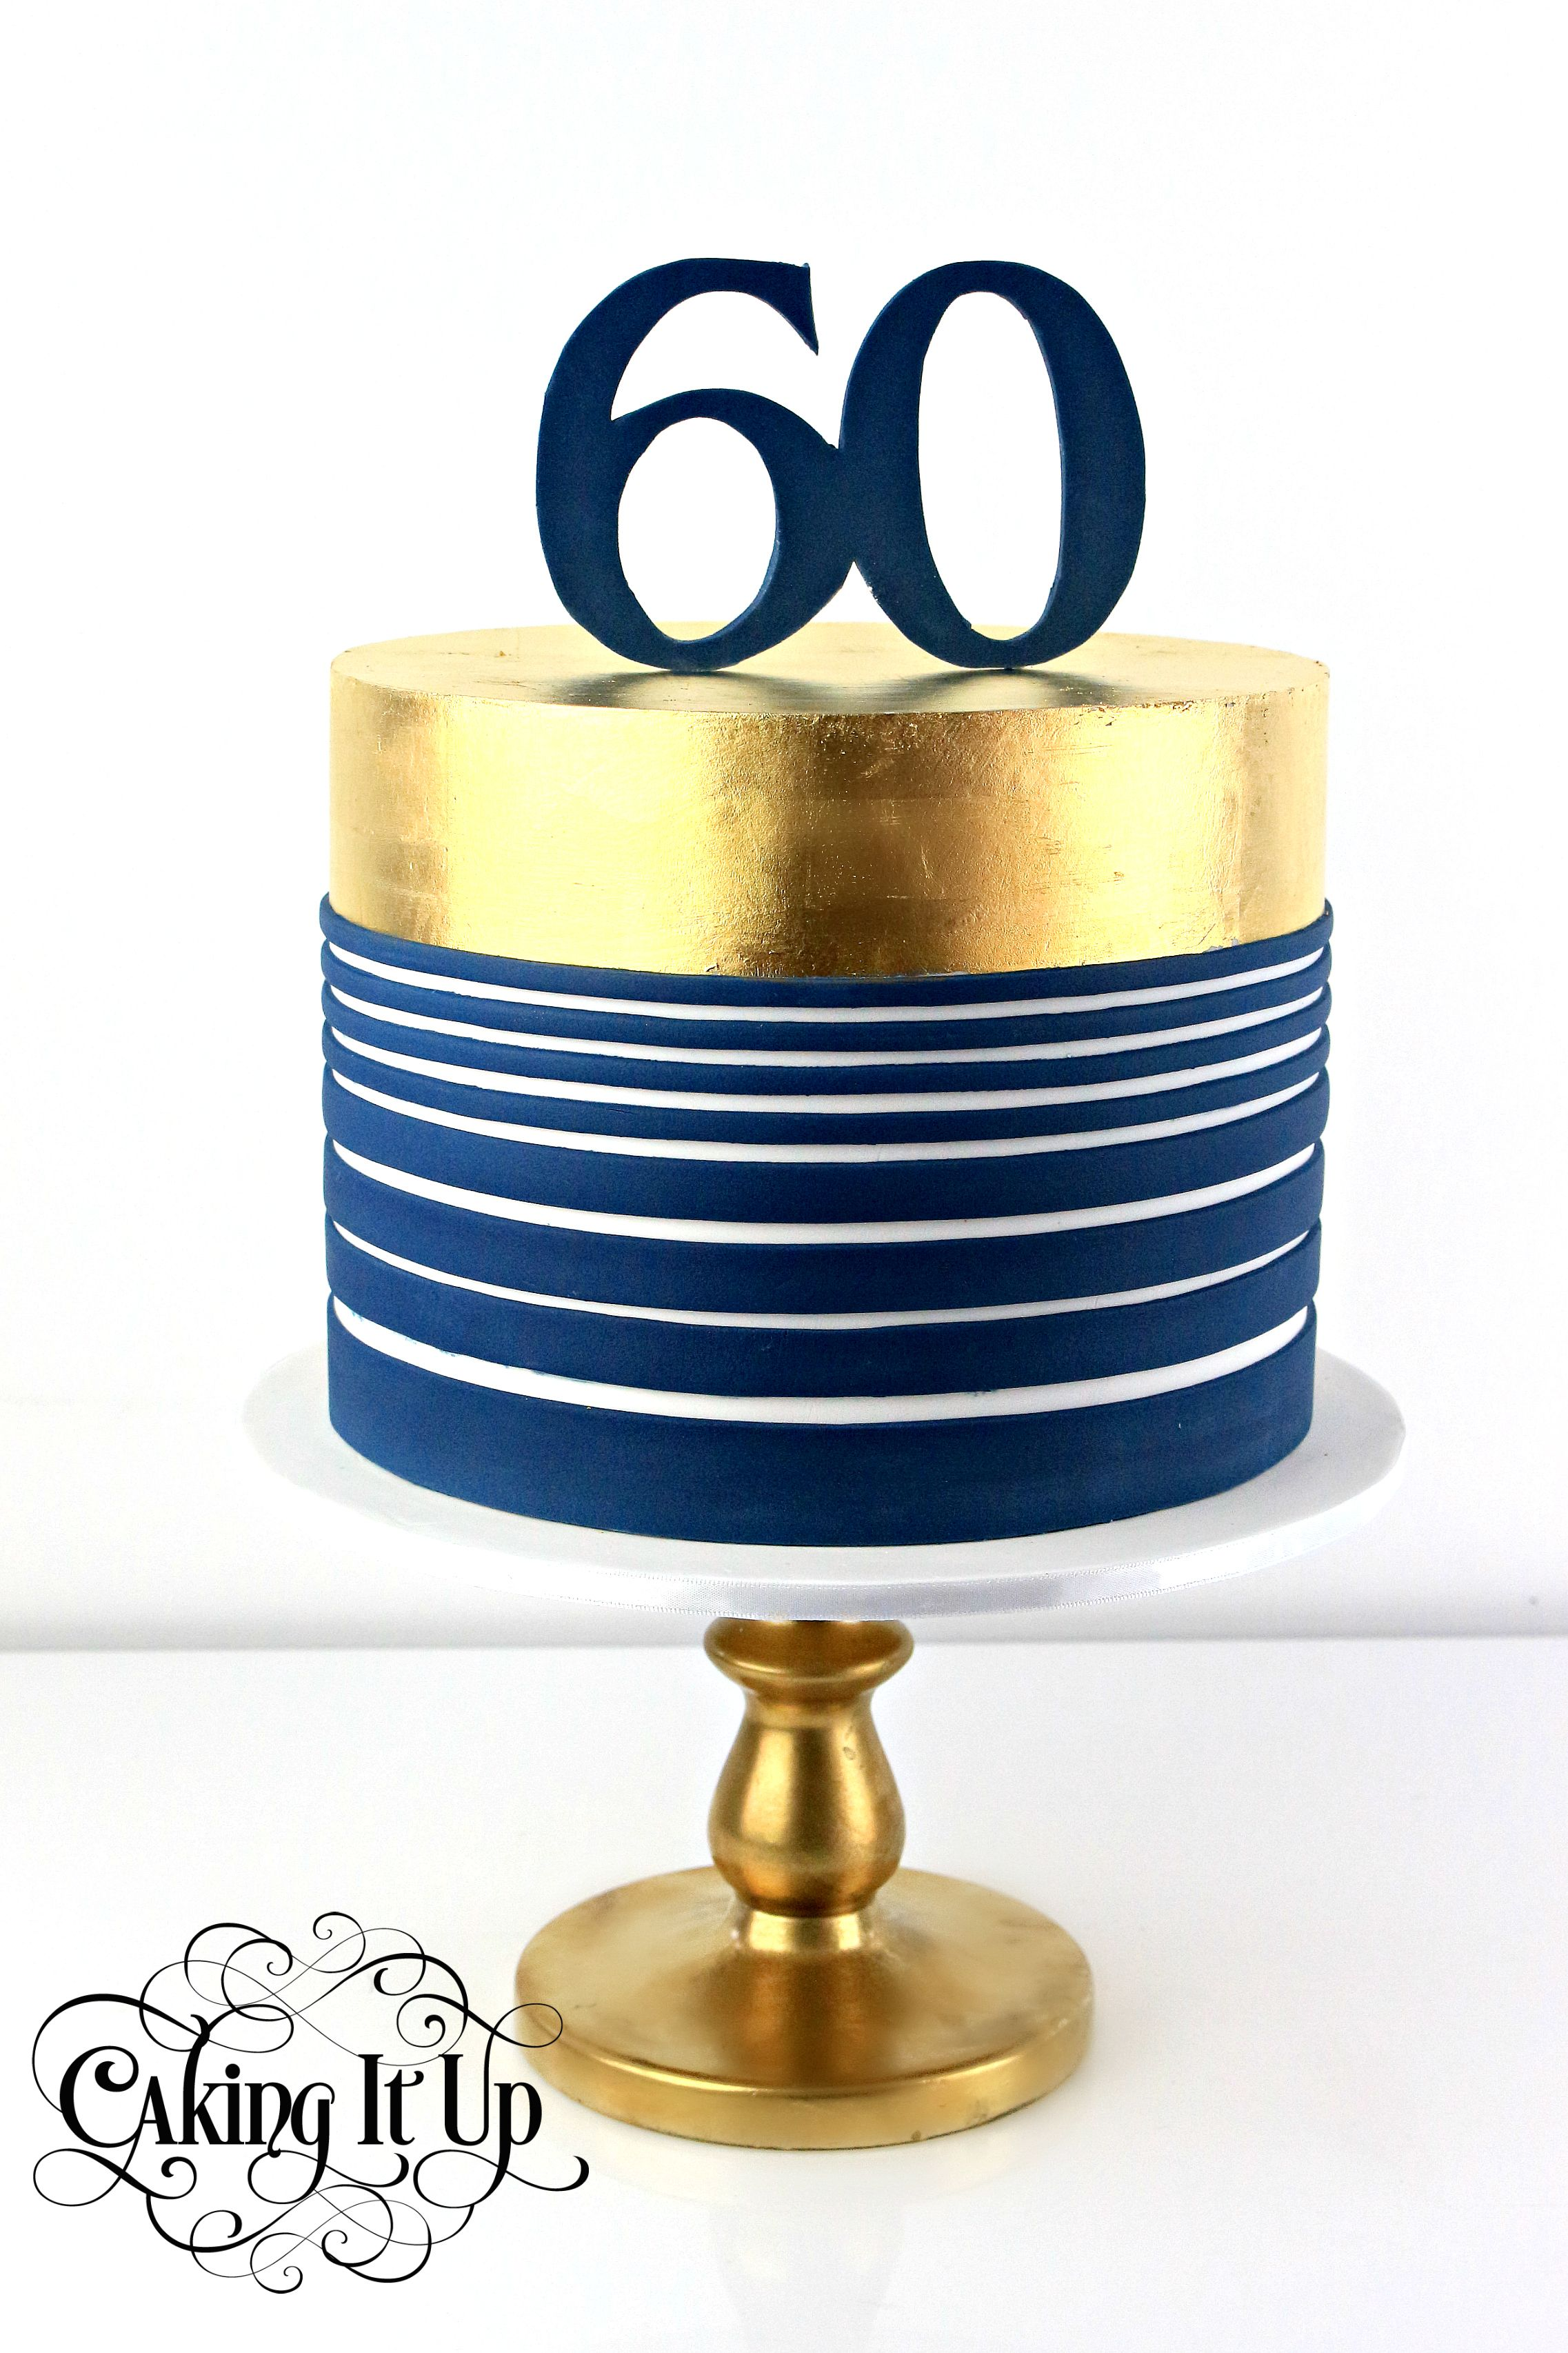 1 Tier 60th Birthday Cake Featuring Navy Horizontal And